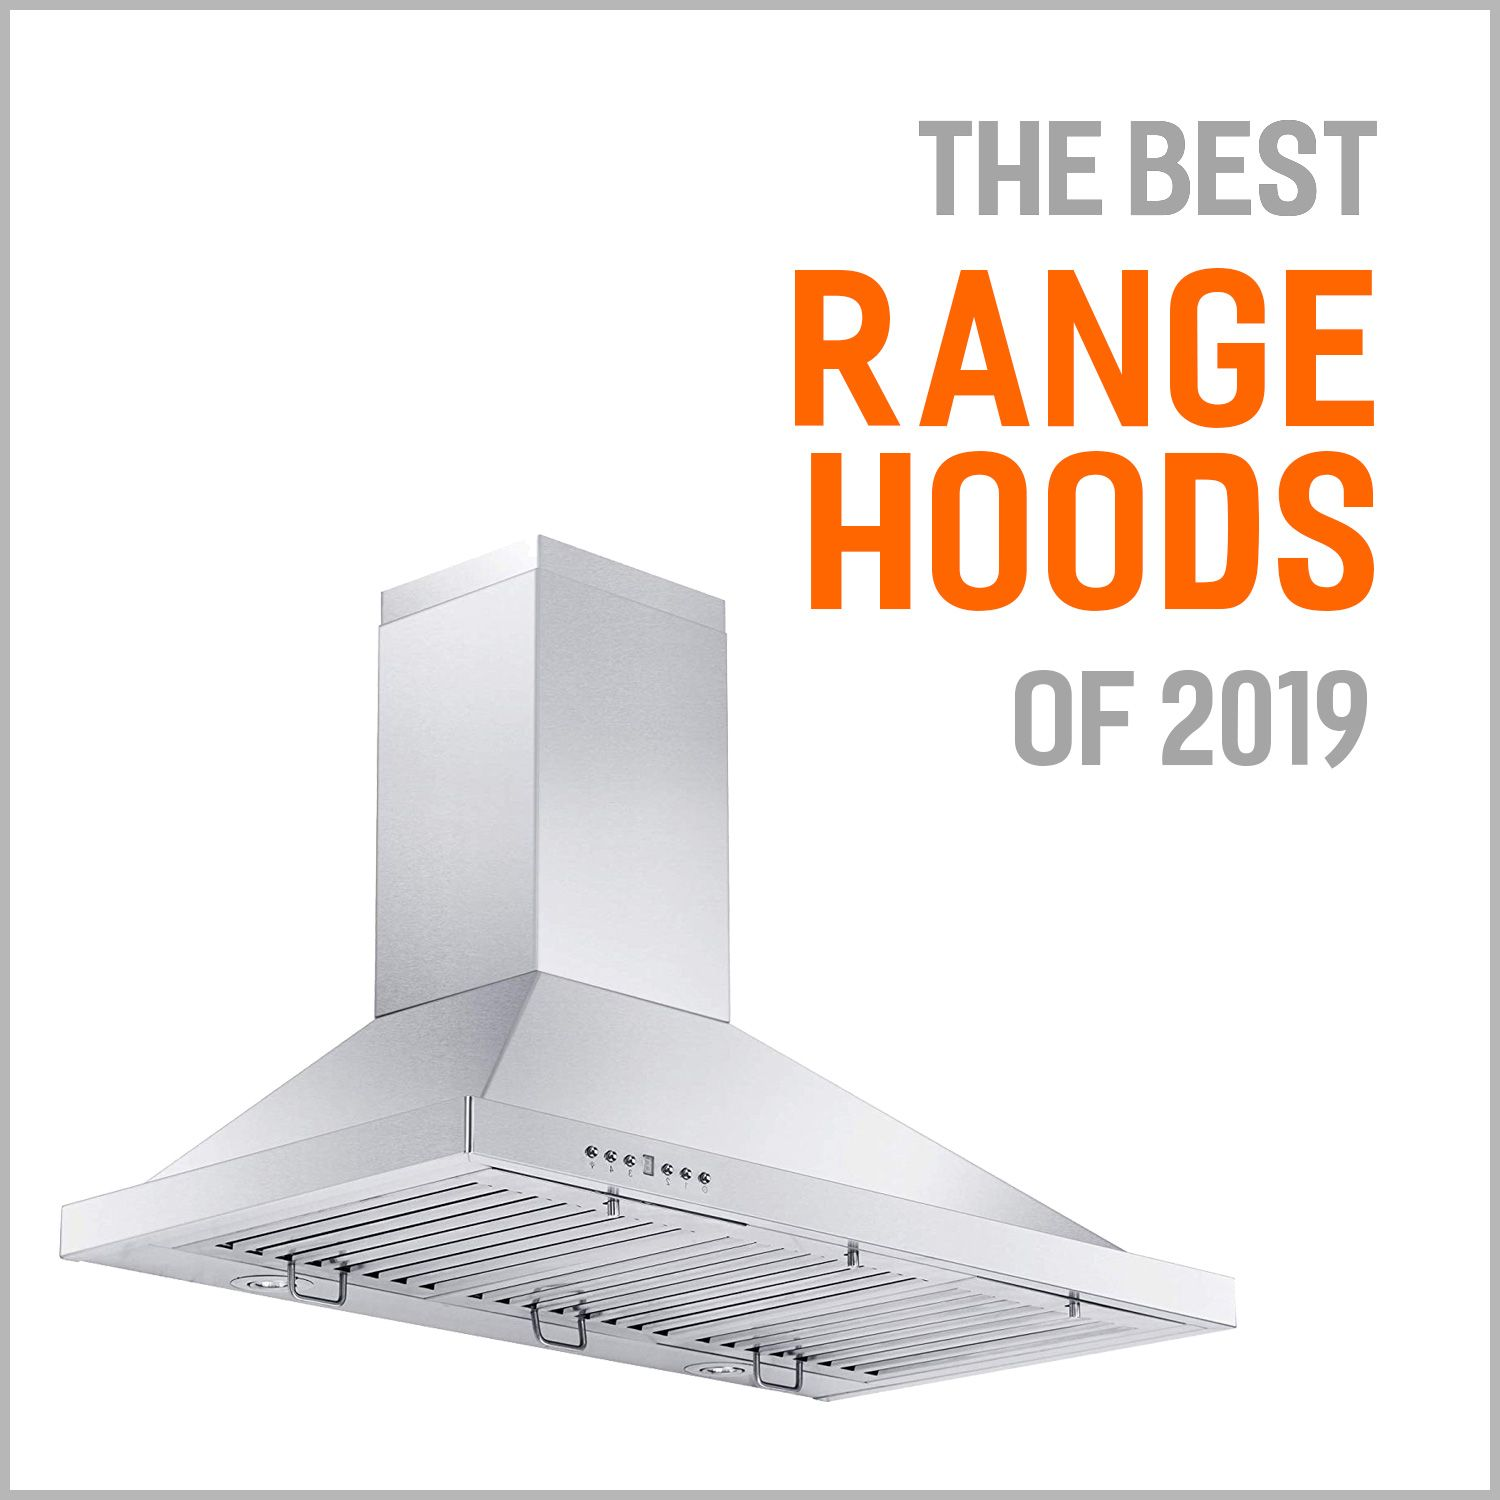 Buying The Best Range Hood Is Not Just About A Good Deal But It S Also About Creating The Highest Kitchen Air In 2020 Best Range Hoods Range Hoods Range Hood Reviews